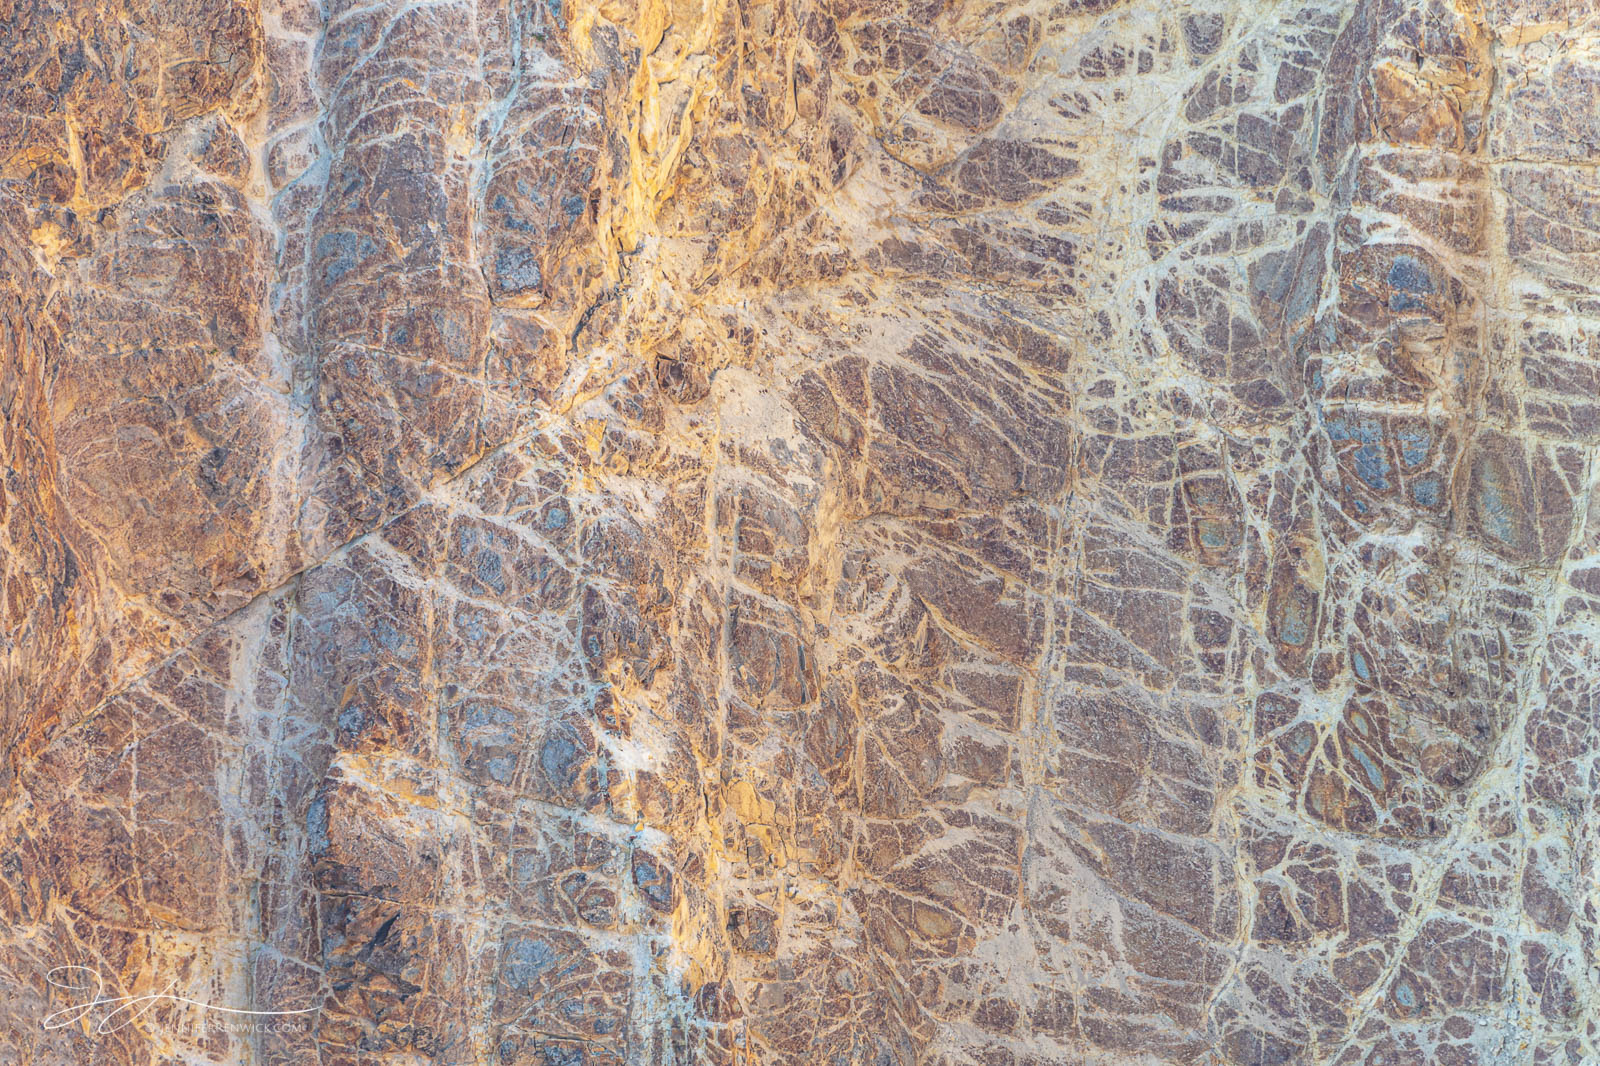 Fractures and patterns cut across the hydrothermally altered rhyolite walls of the Grand Canyon of the Yellowstone.